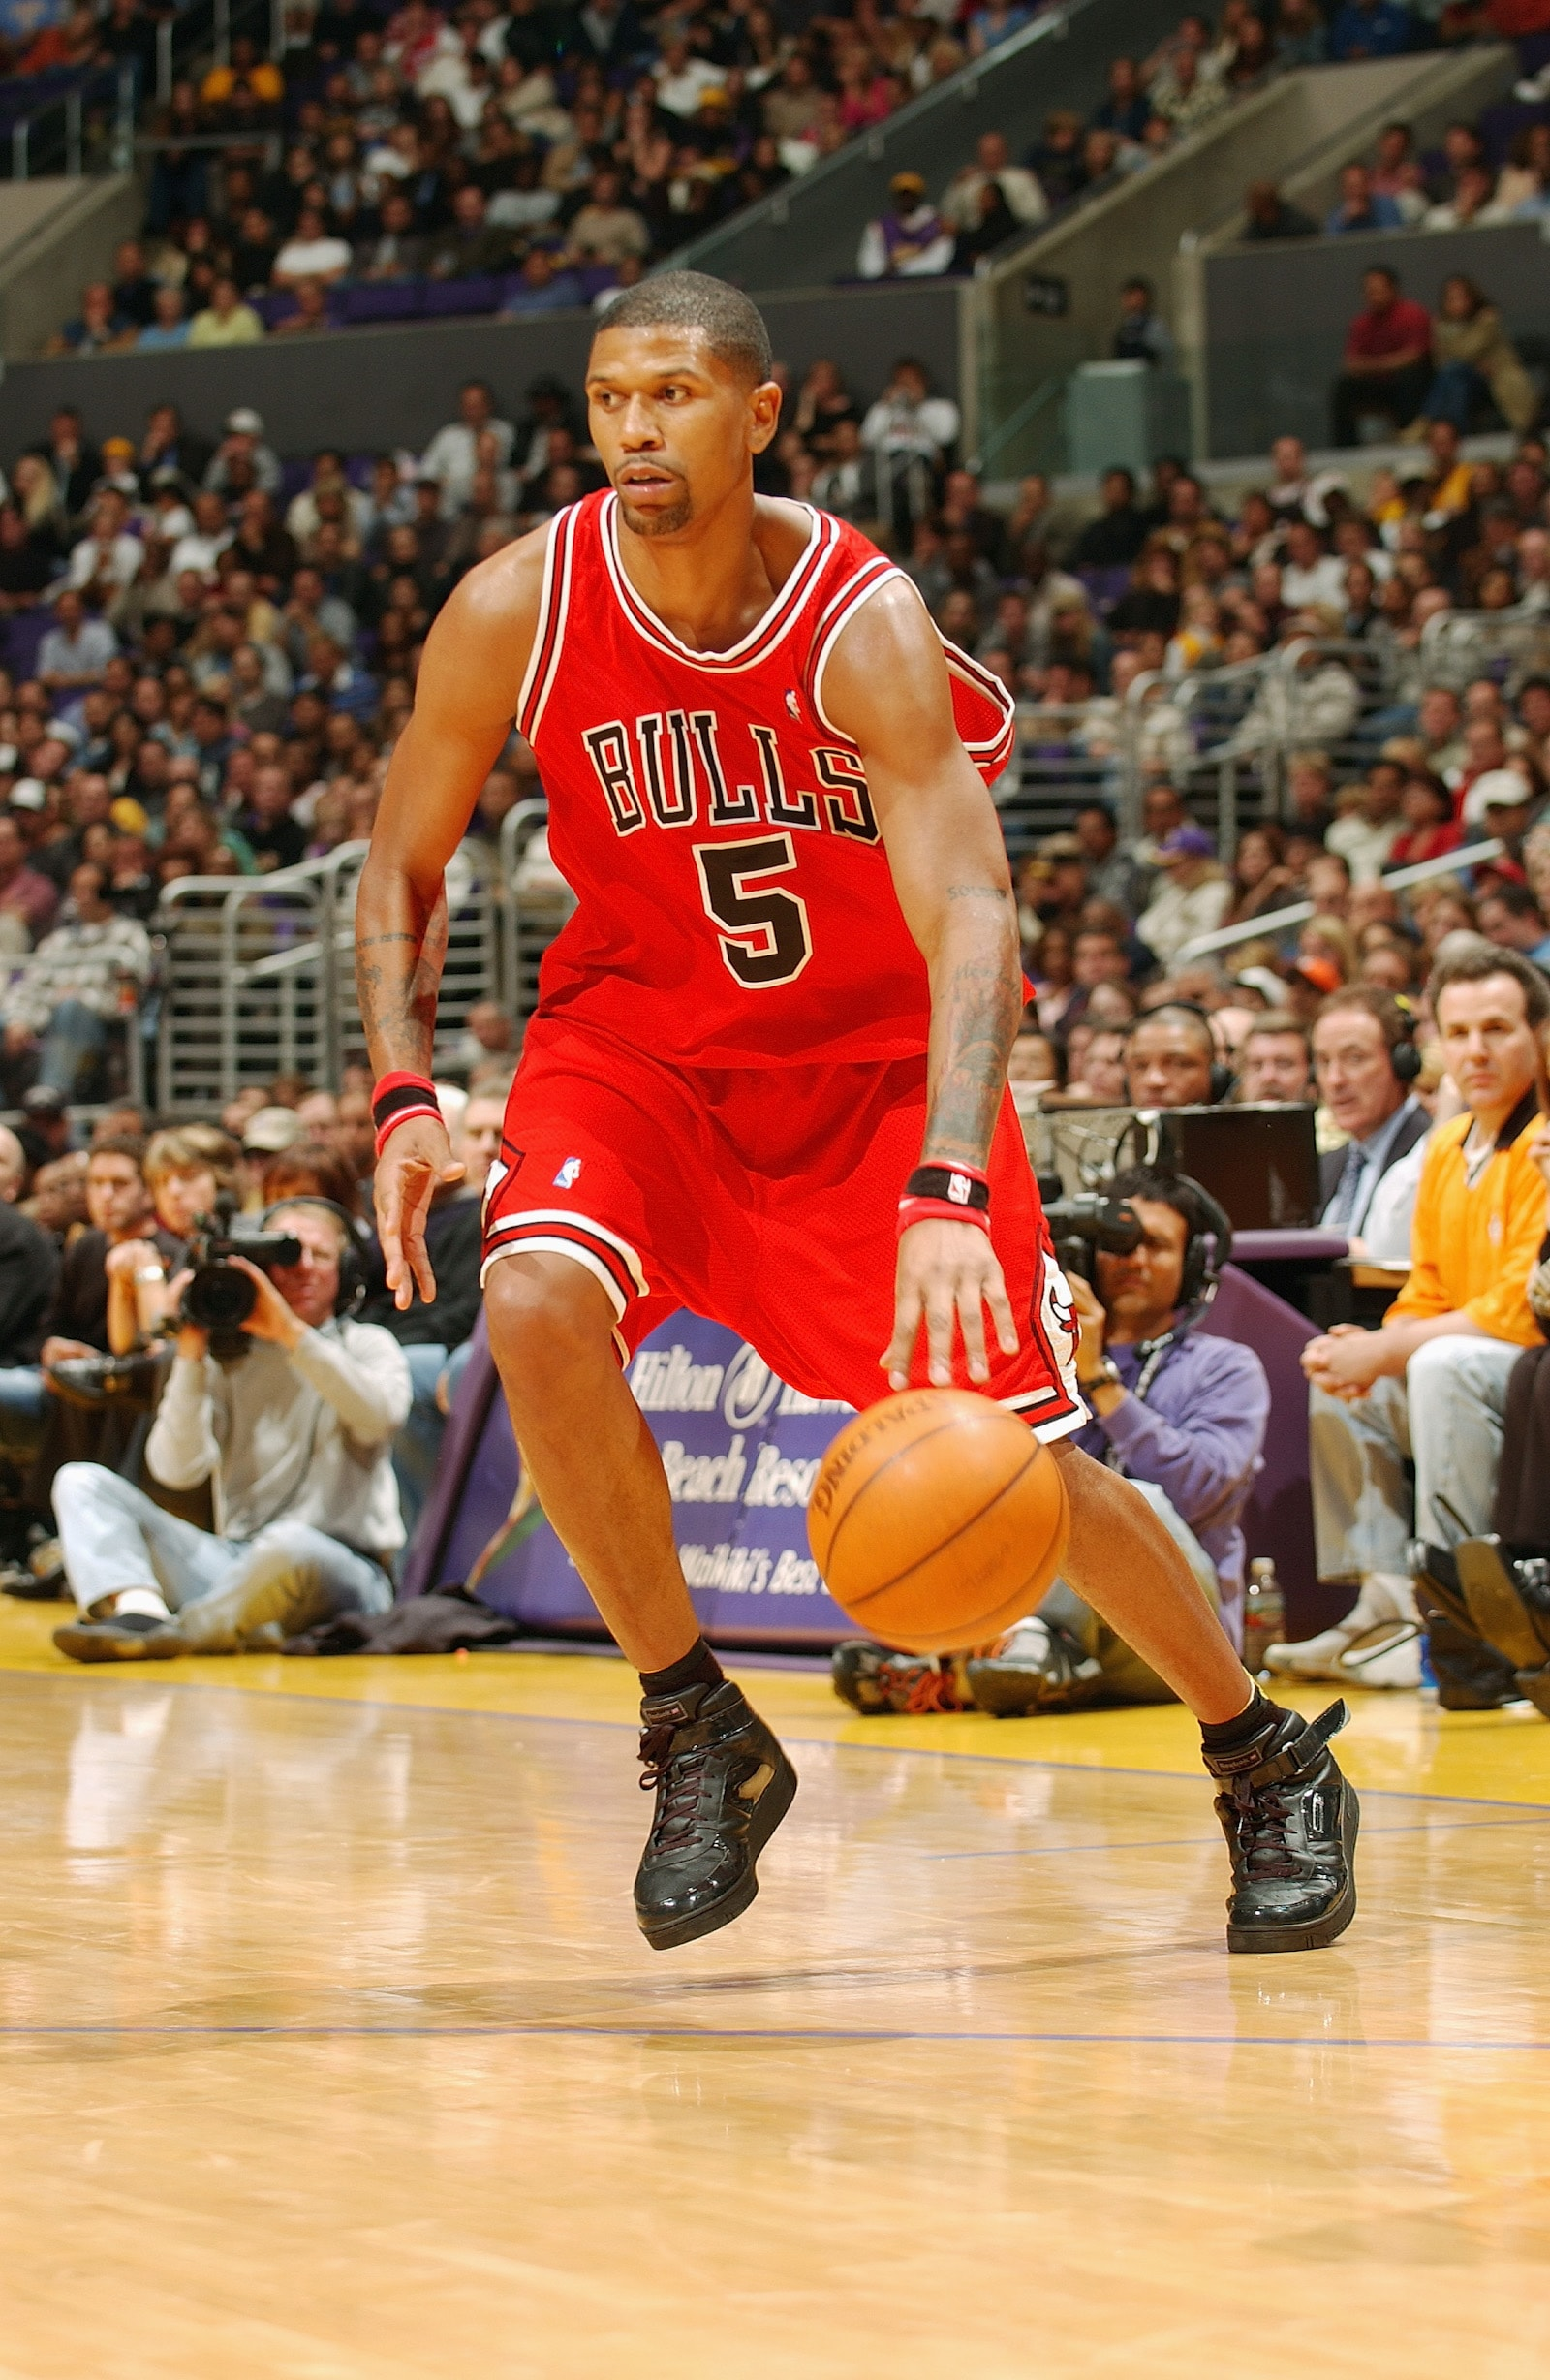 Jalen Rose #5 of the Chicago Bulls drives to the hoop during the game against the Los Angeles Lakers at the Staples Center on November 21, 2003 in Los Angeles, California.